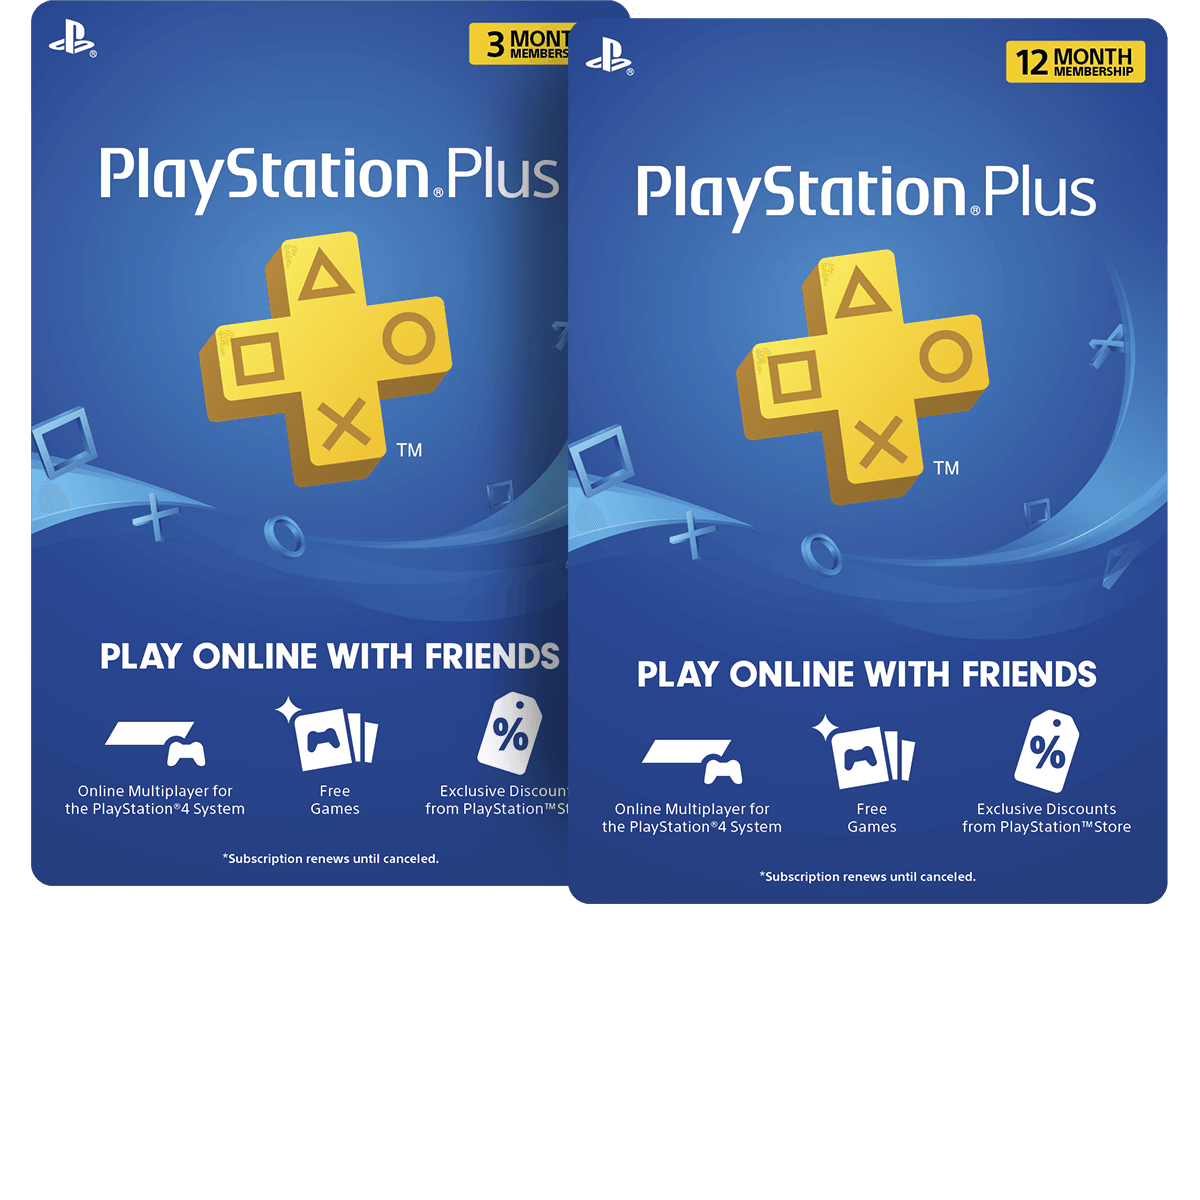 Playstation Plus Monthly Games Online Multiplayer Discounts And More Playstation